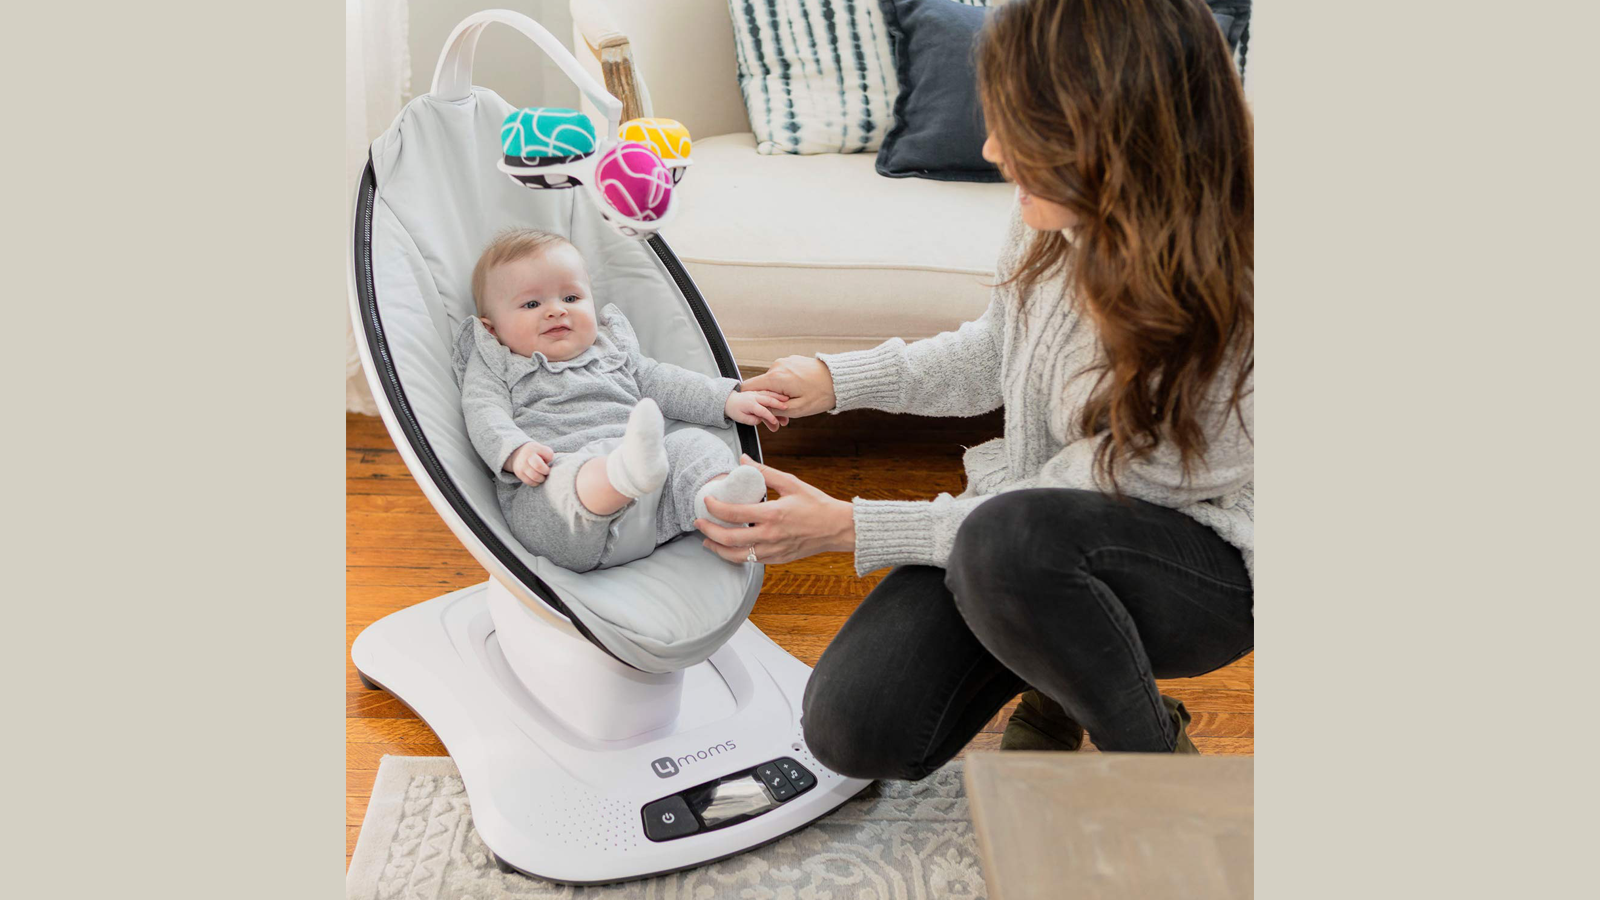 mamaRoo Smart Baby Swing from 4moms with baby and watchful mom in the living room